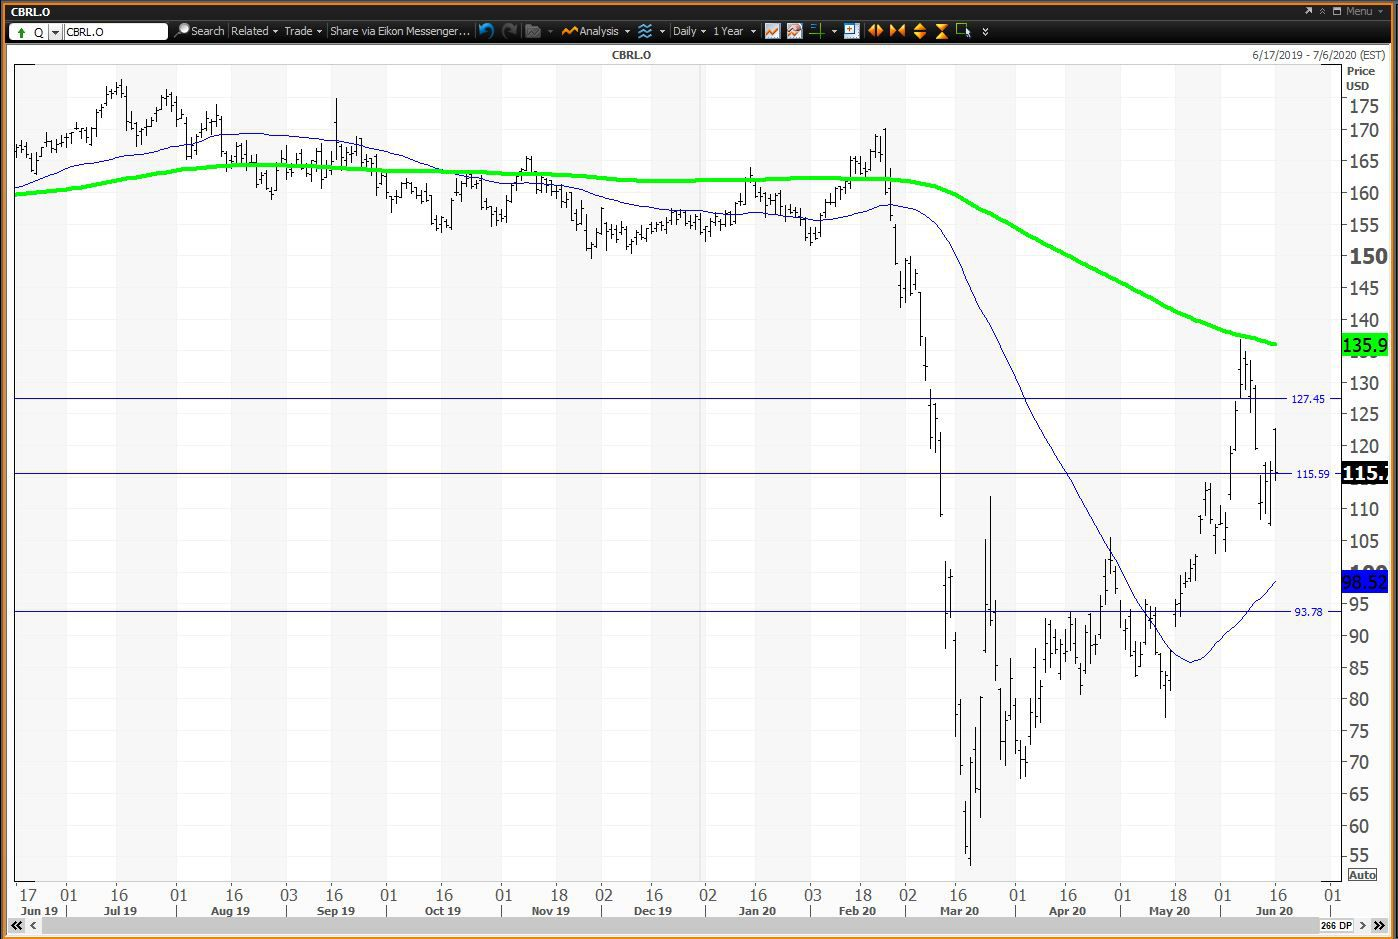 Daily chart showing the share price performance of Cracker Barrel Old Country Store, Inc. (CBRL)